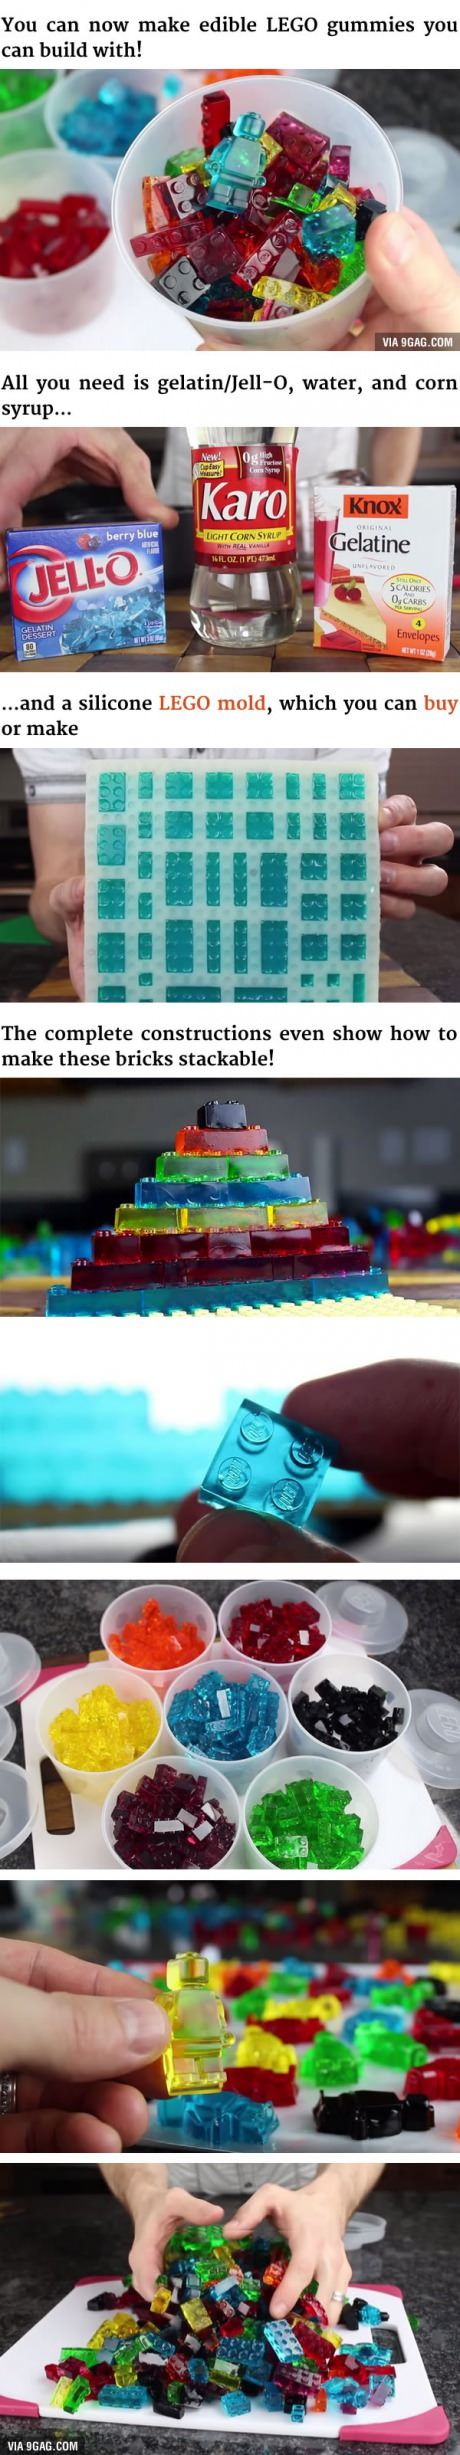 épinglé par ❃❀CM❁✿⊱How To Make Edible & Stackable LEGO Gummy Candy